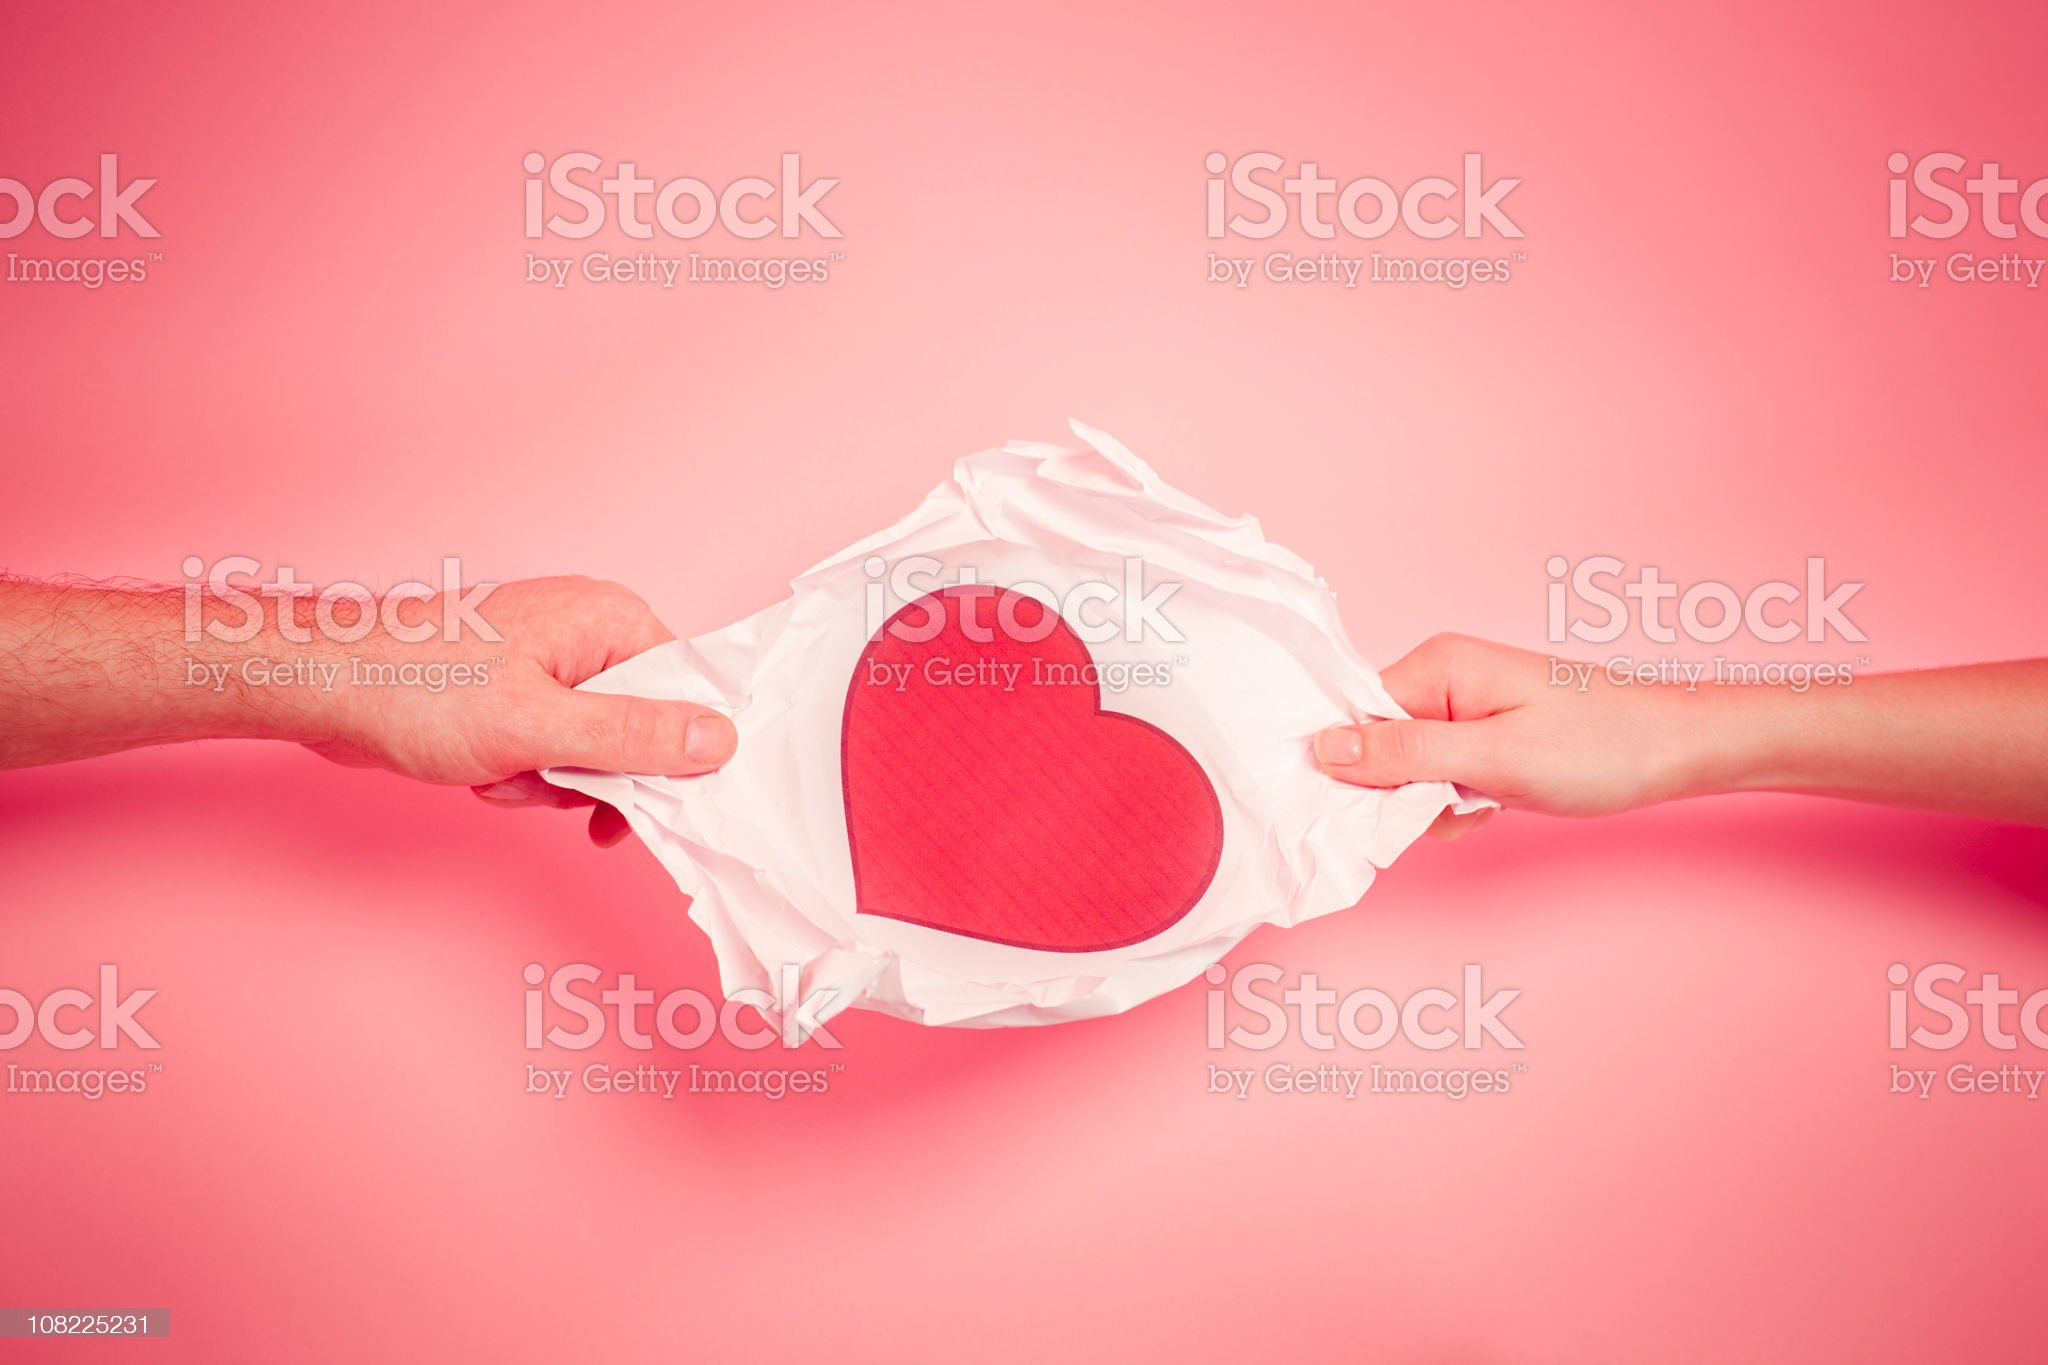 That's my love! royalty-free stock photo